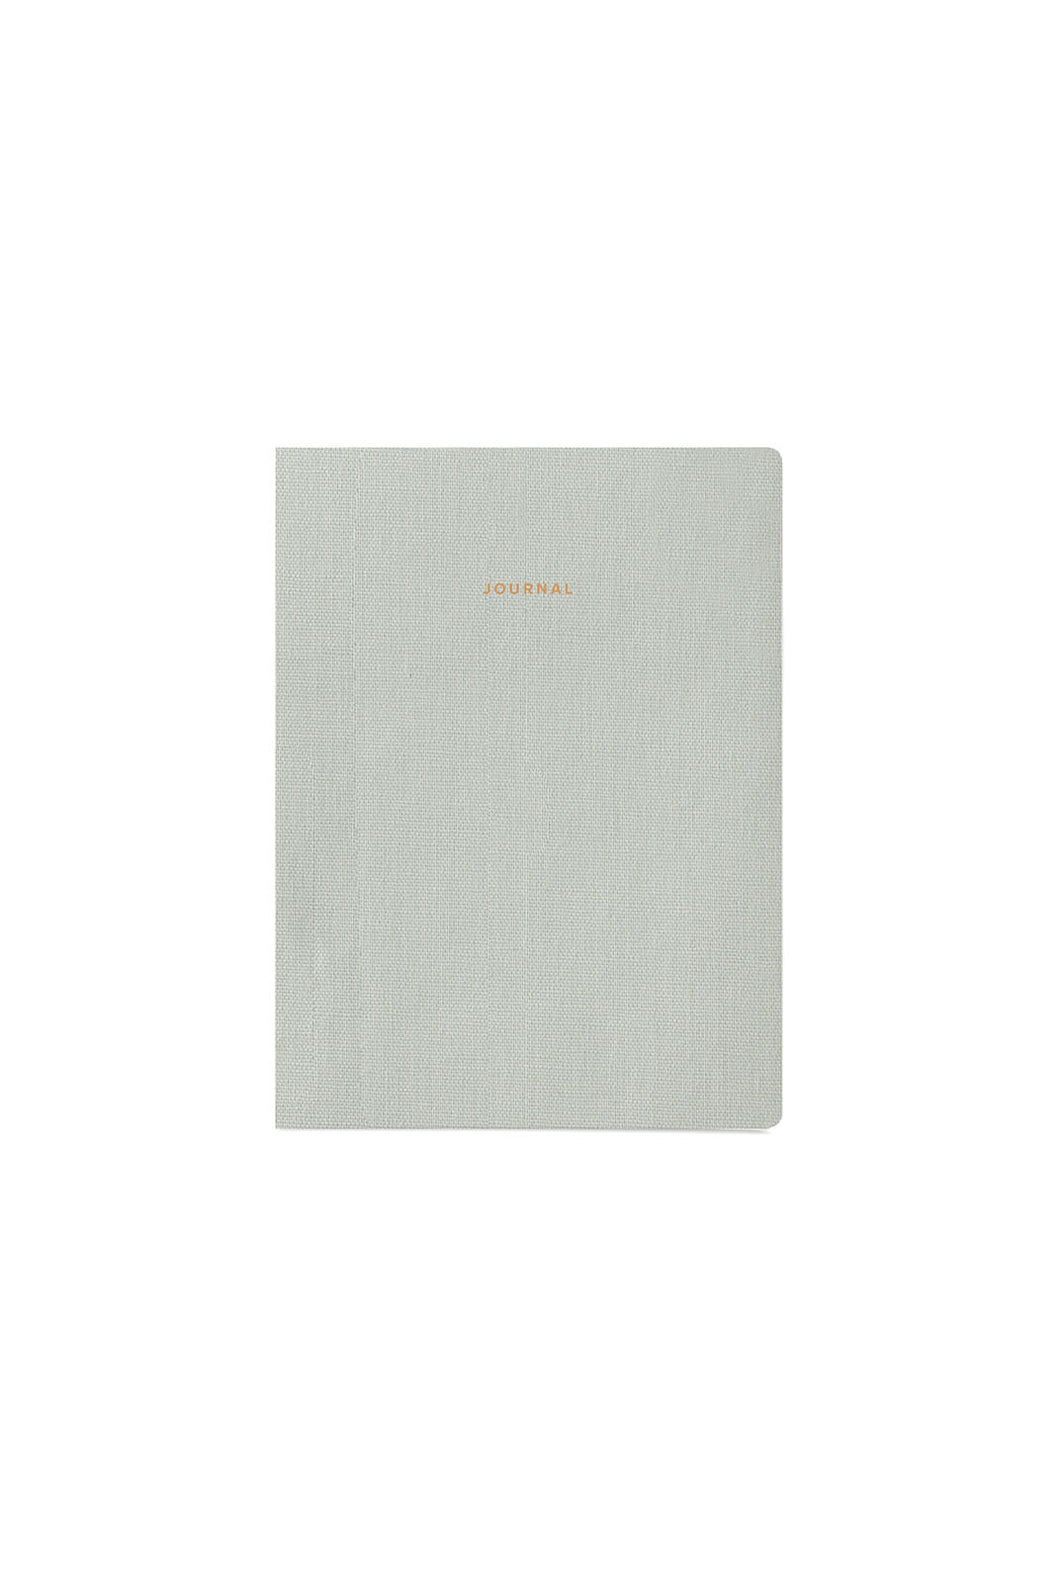 Appointed - Journal - Dot Grid - Large - Soft Cover - Light Sage